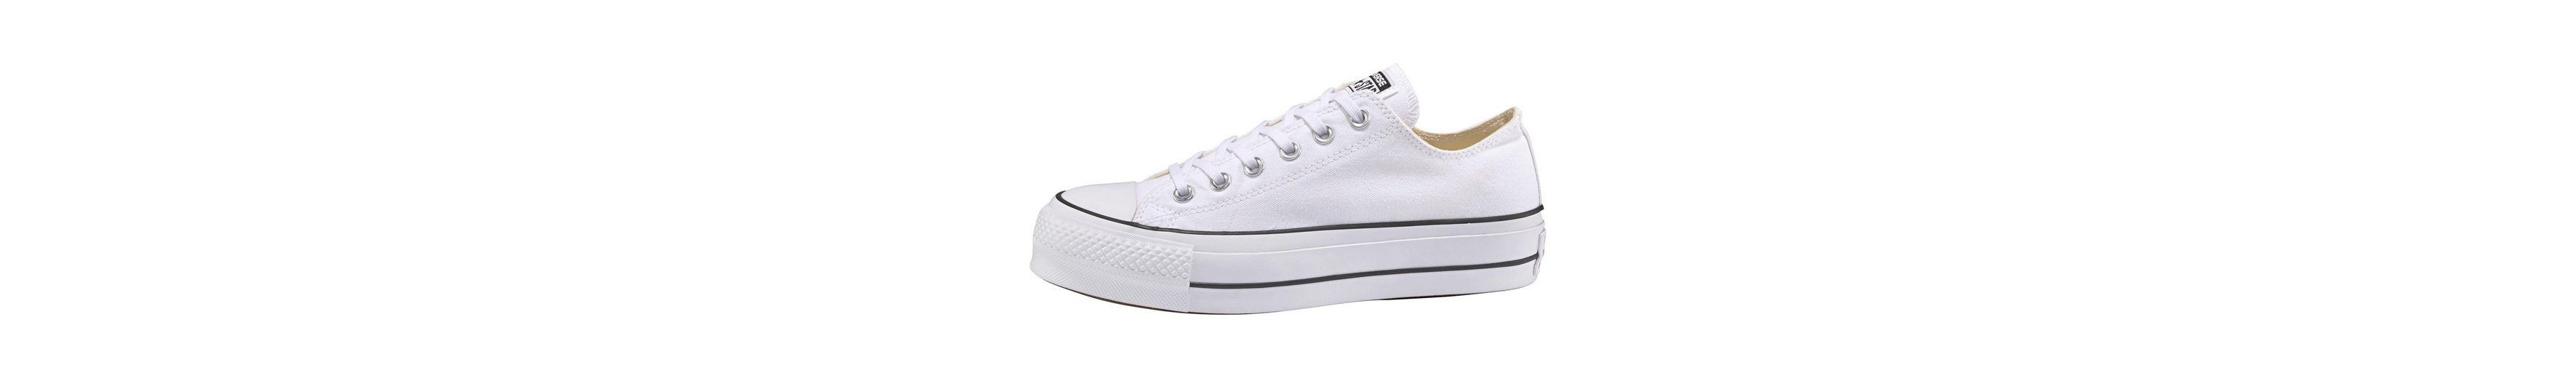 Converse Chuck Taylor All Star Lift Ox Plateausneaker, Plateau